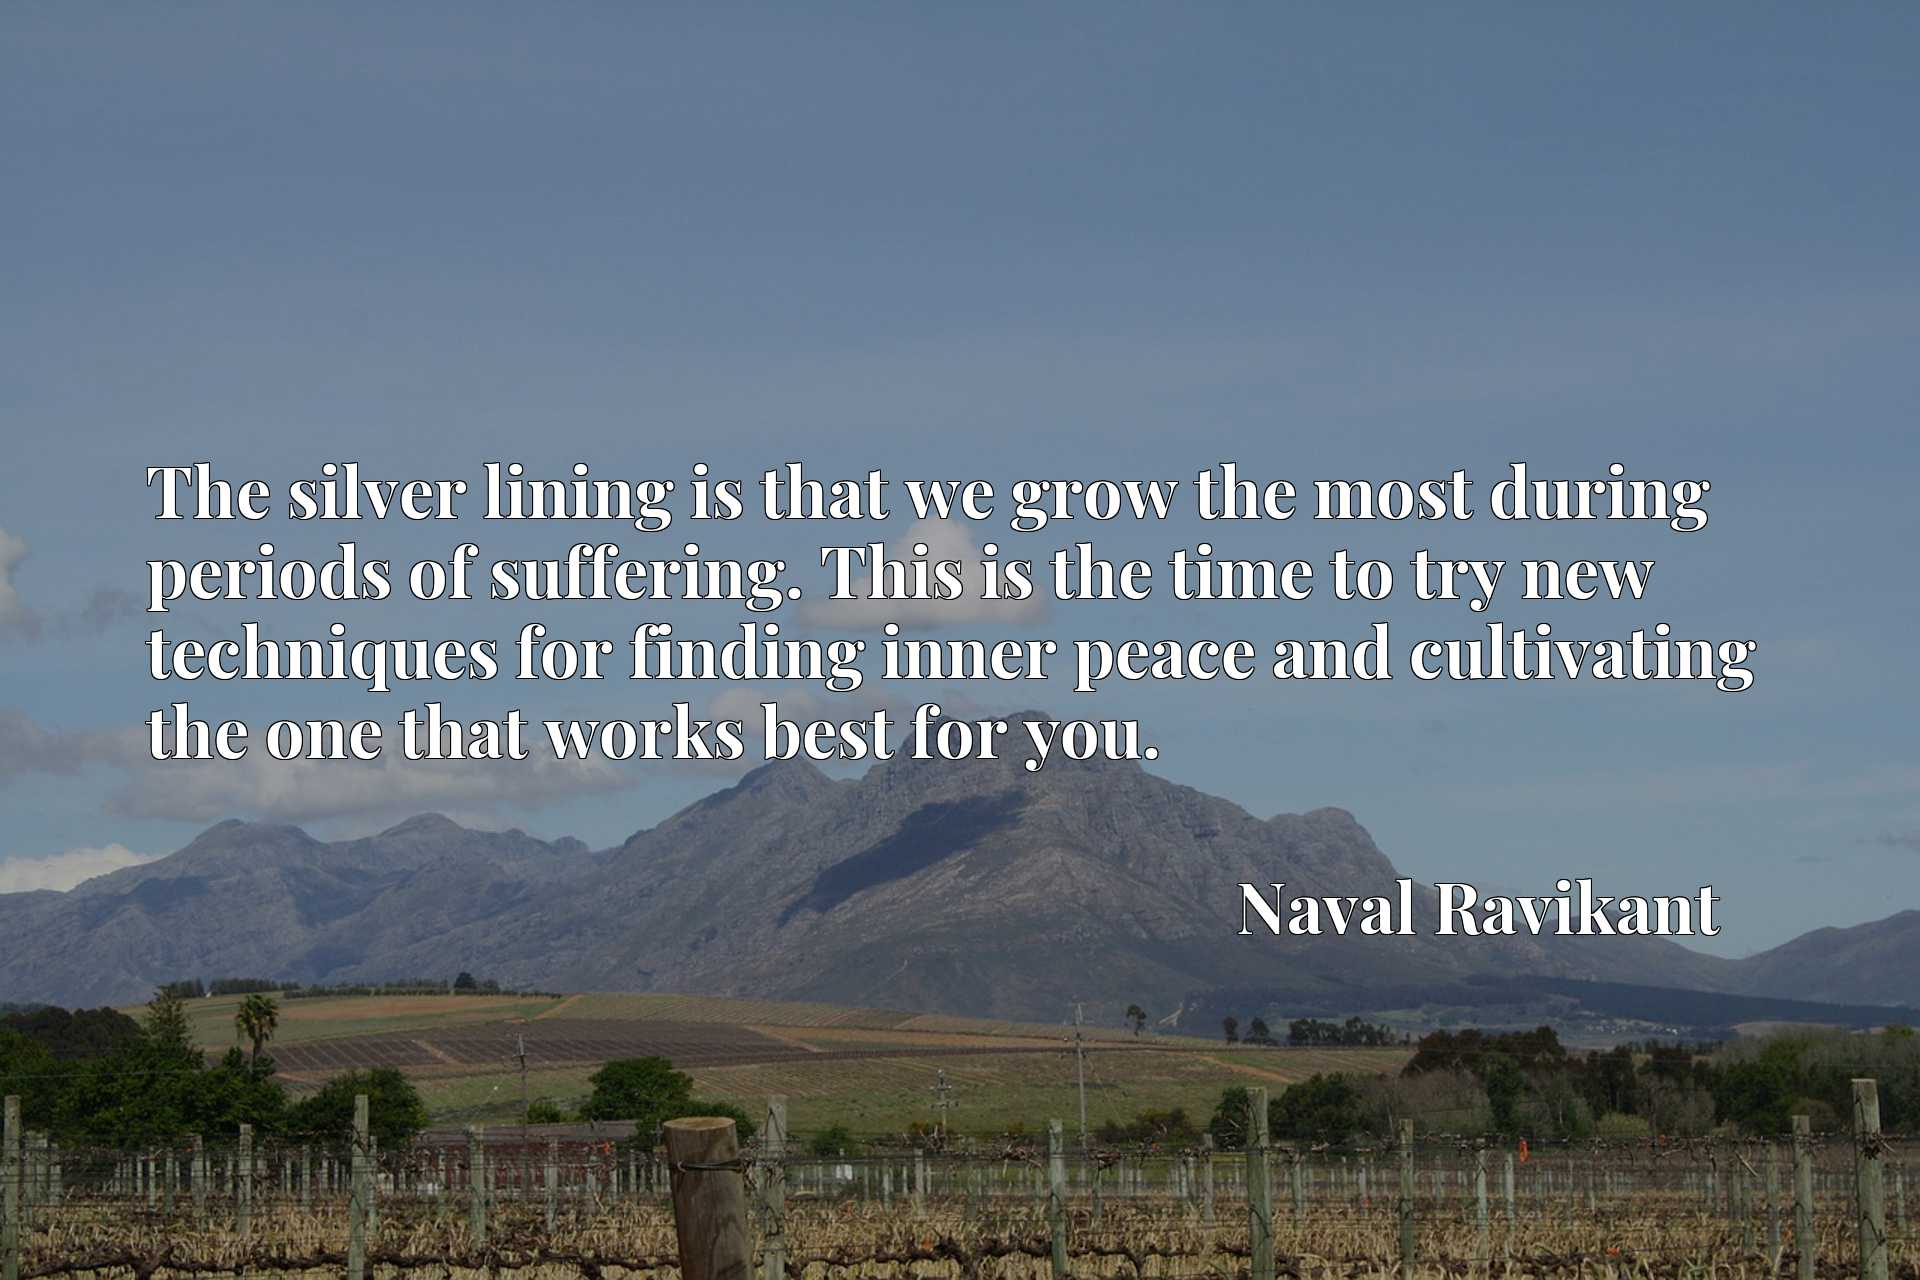 Quote Picture :The silver lining is that we grow the most during periods of suffering. This is the time to try new techniques for finding inner peace and cultivating the one that works best for you.